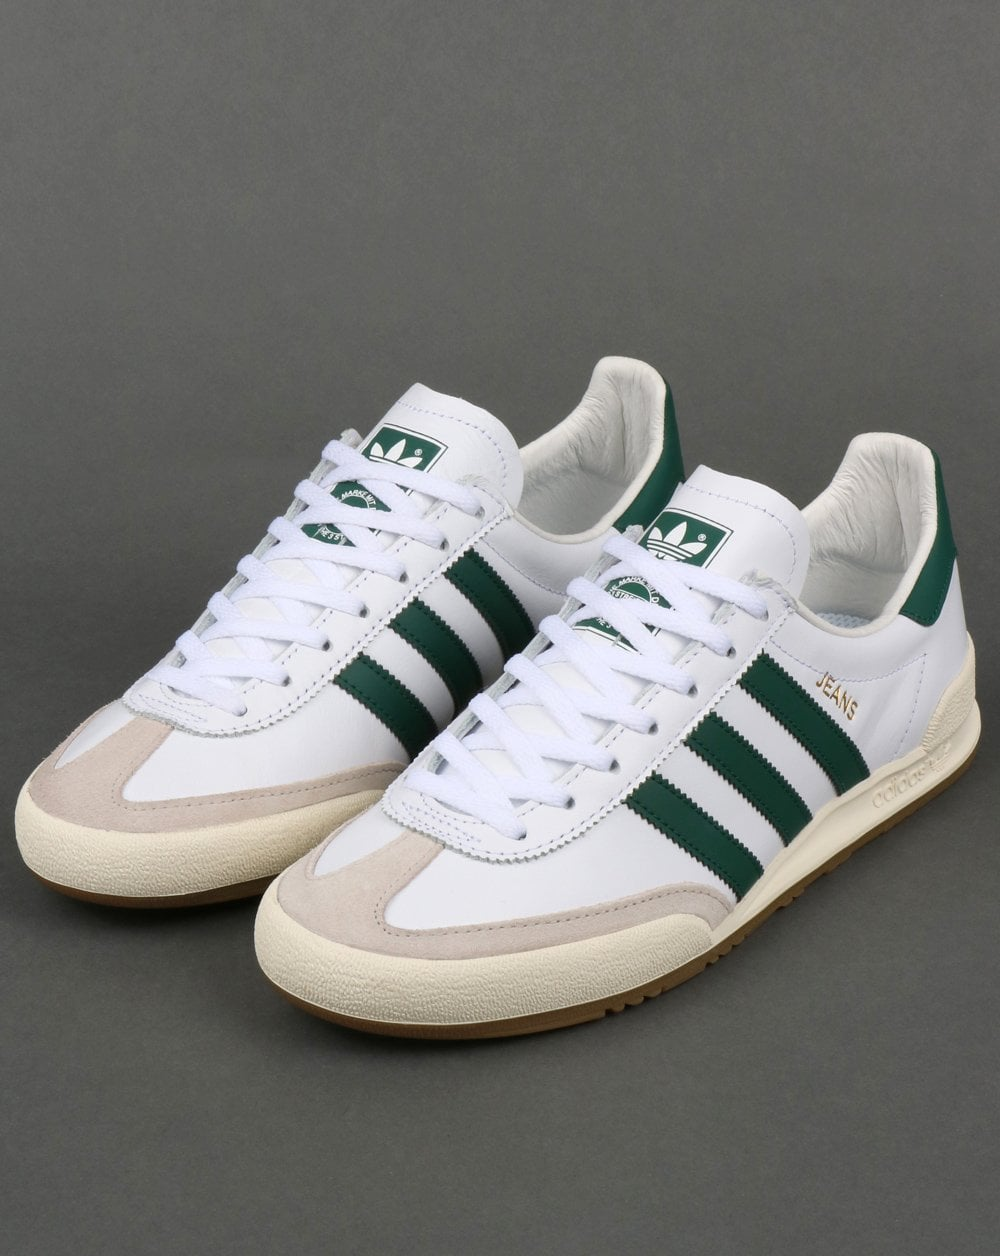 6e7cde016b7c Adidas Jeans Leather Trainers White Green